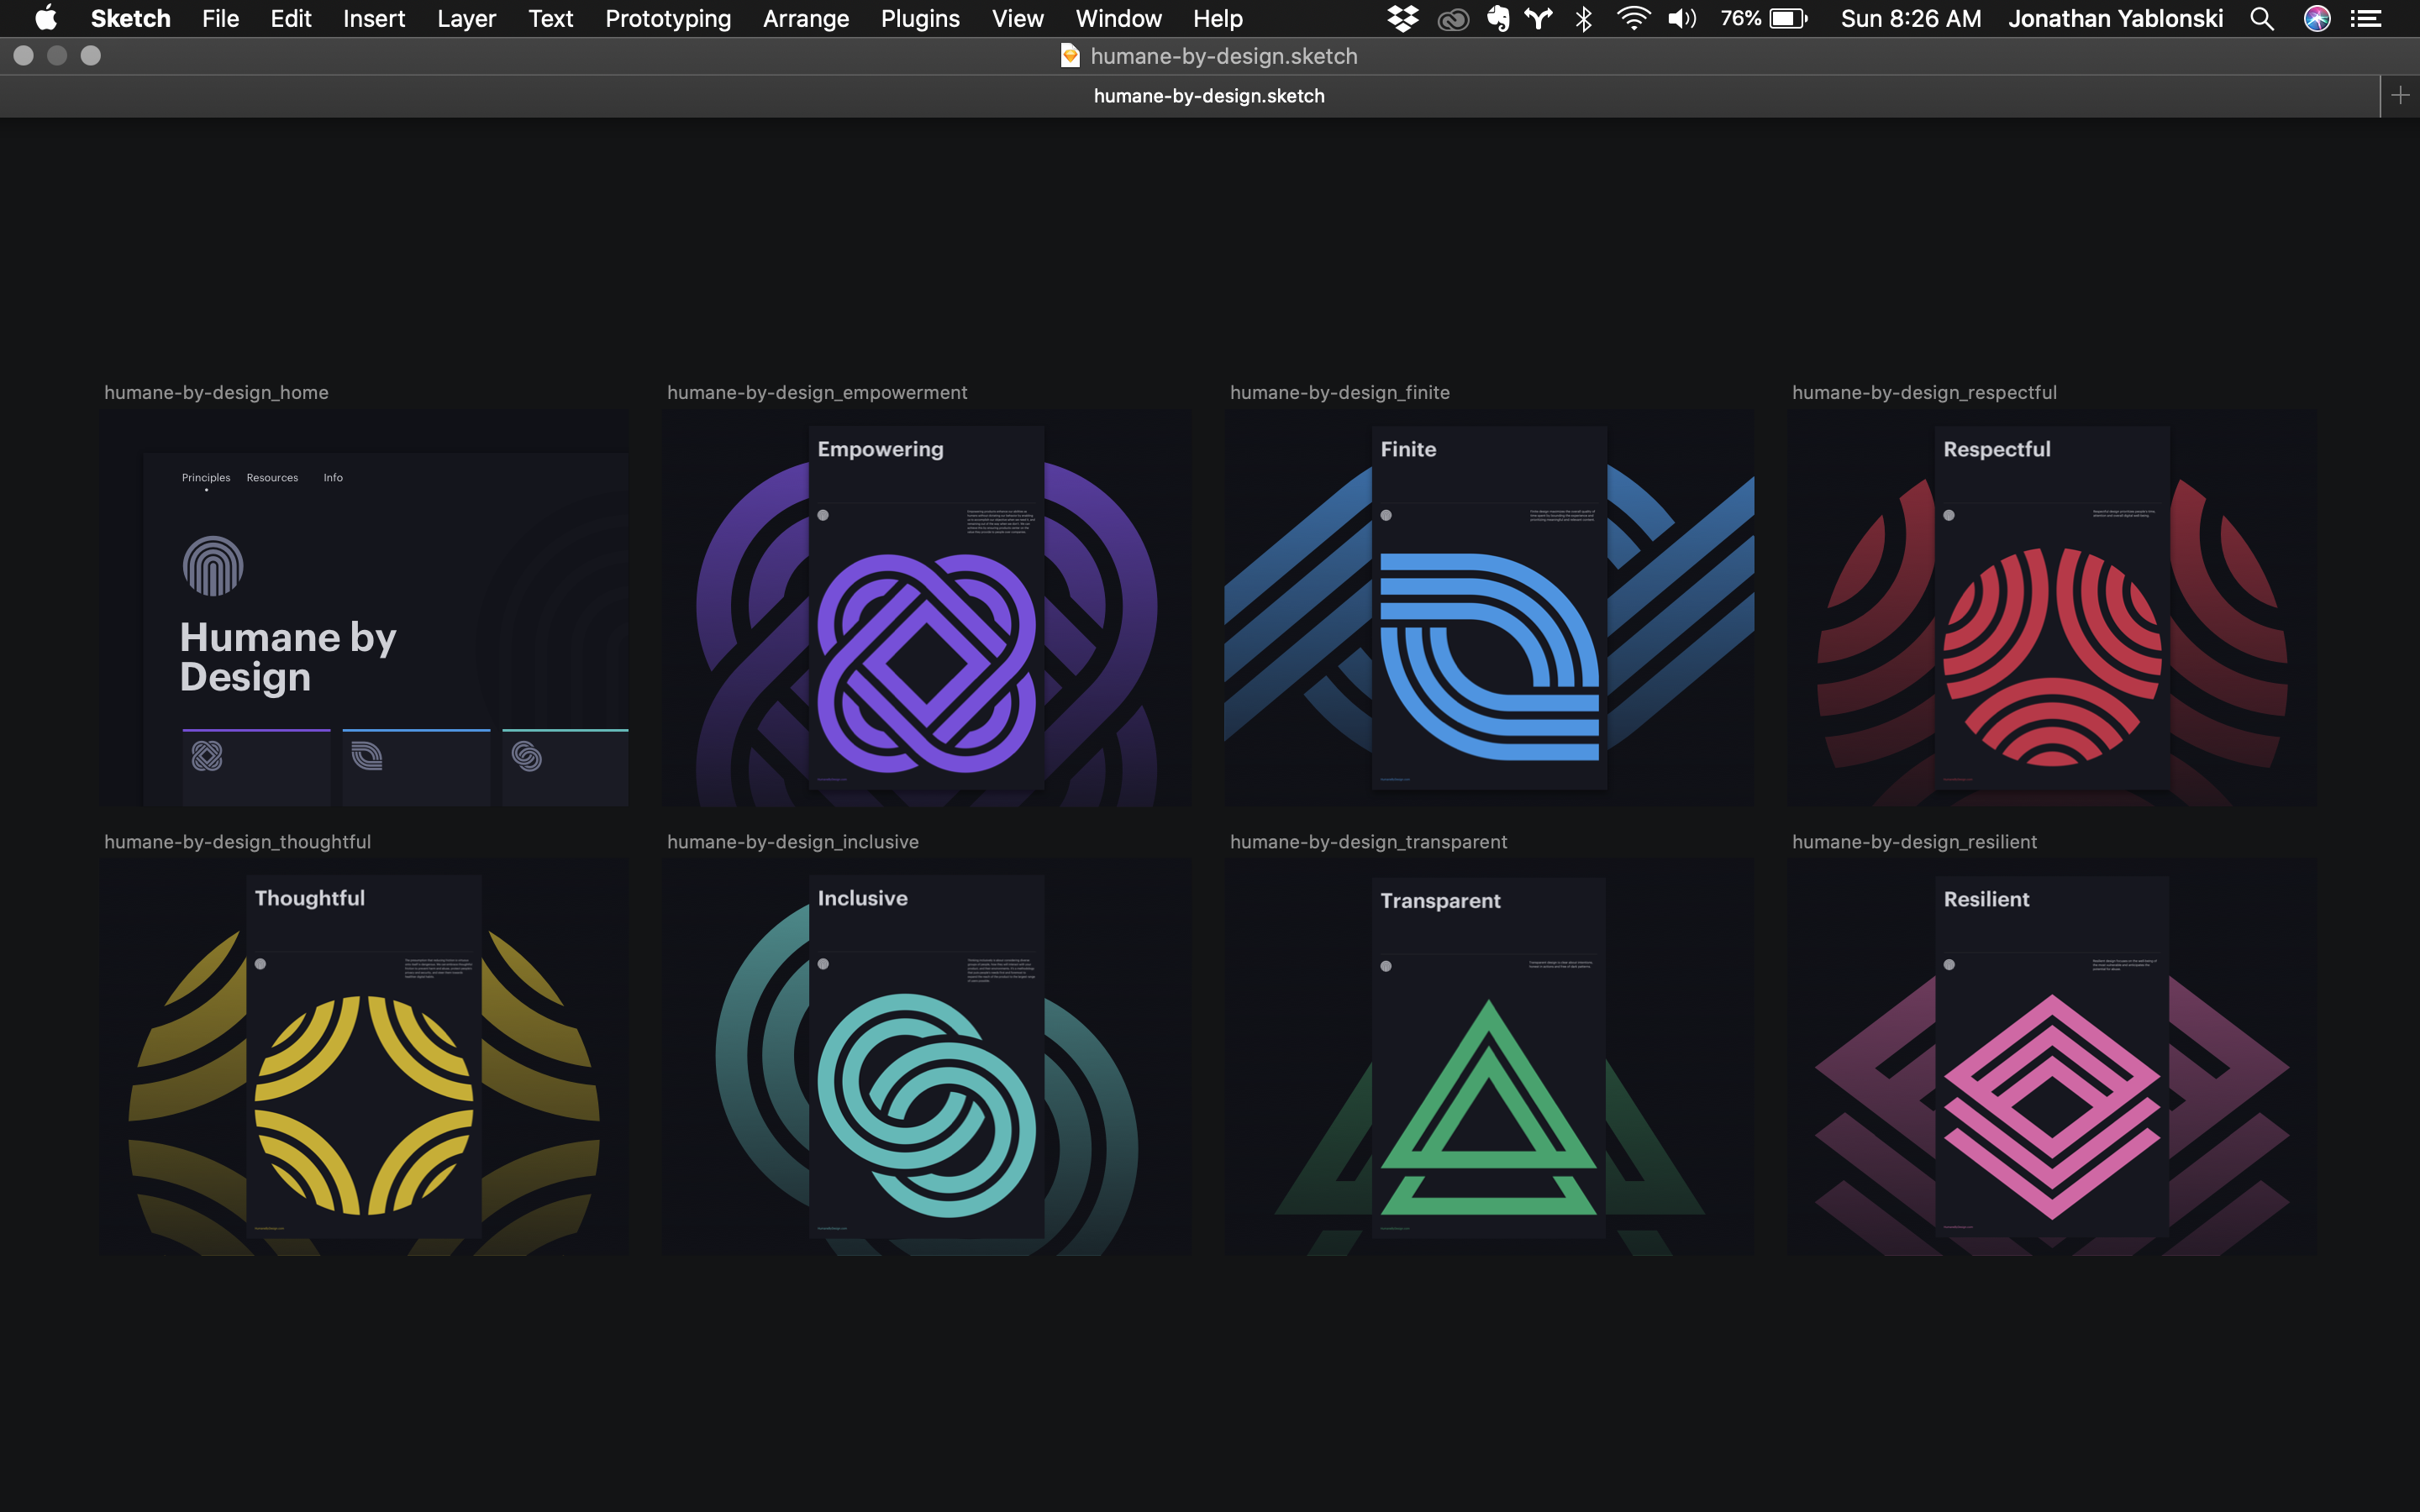 A screenshot showing different poster designs in the Sketch Mac App